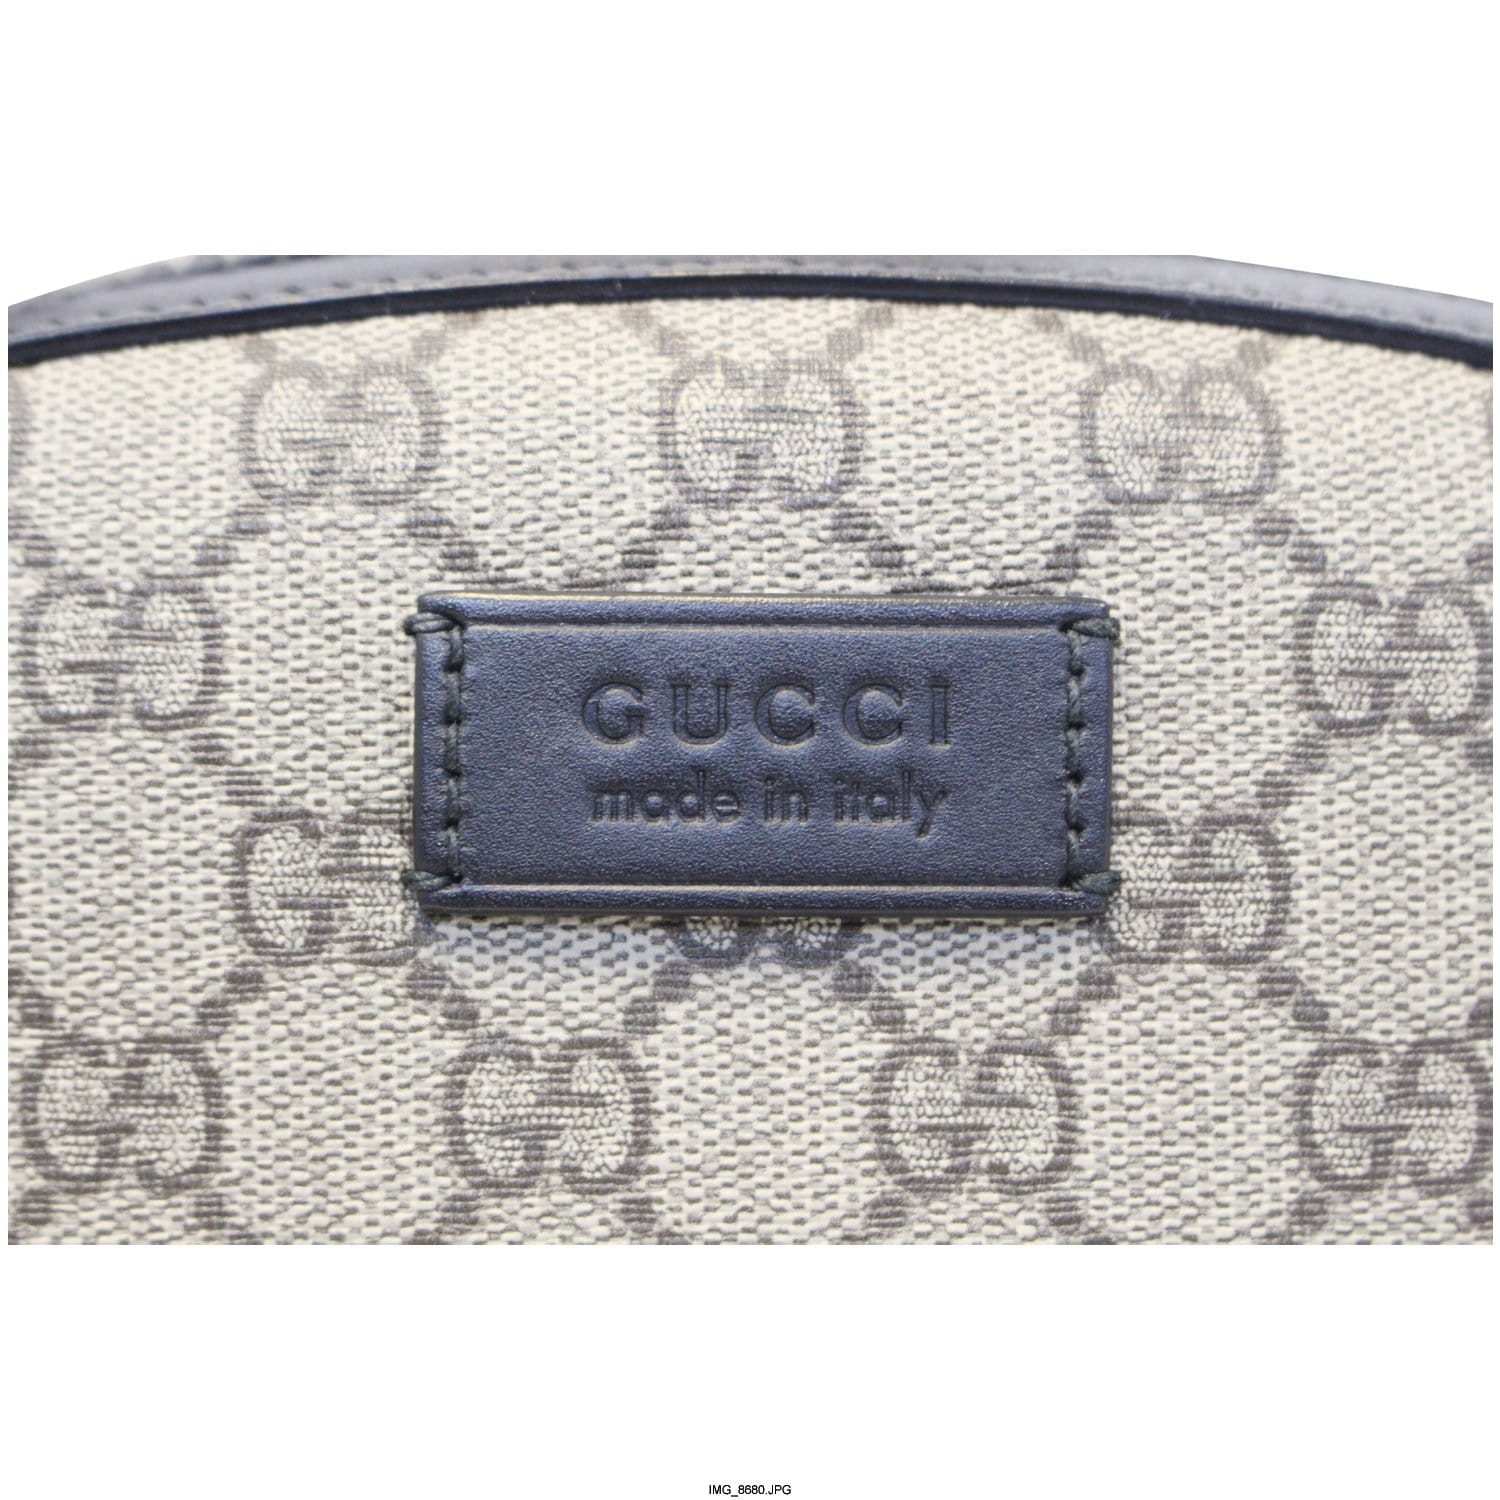 b0365aa74c10 GUCCI GG Monogram Supreme Backpack Bag 406370-US